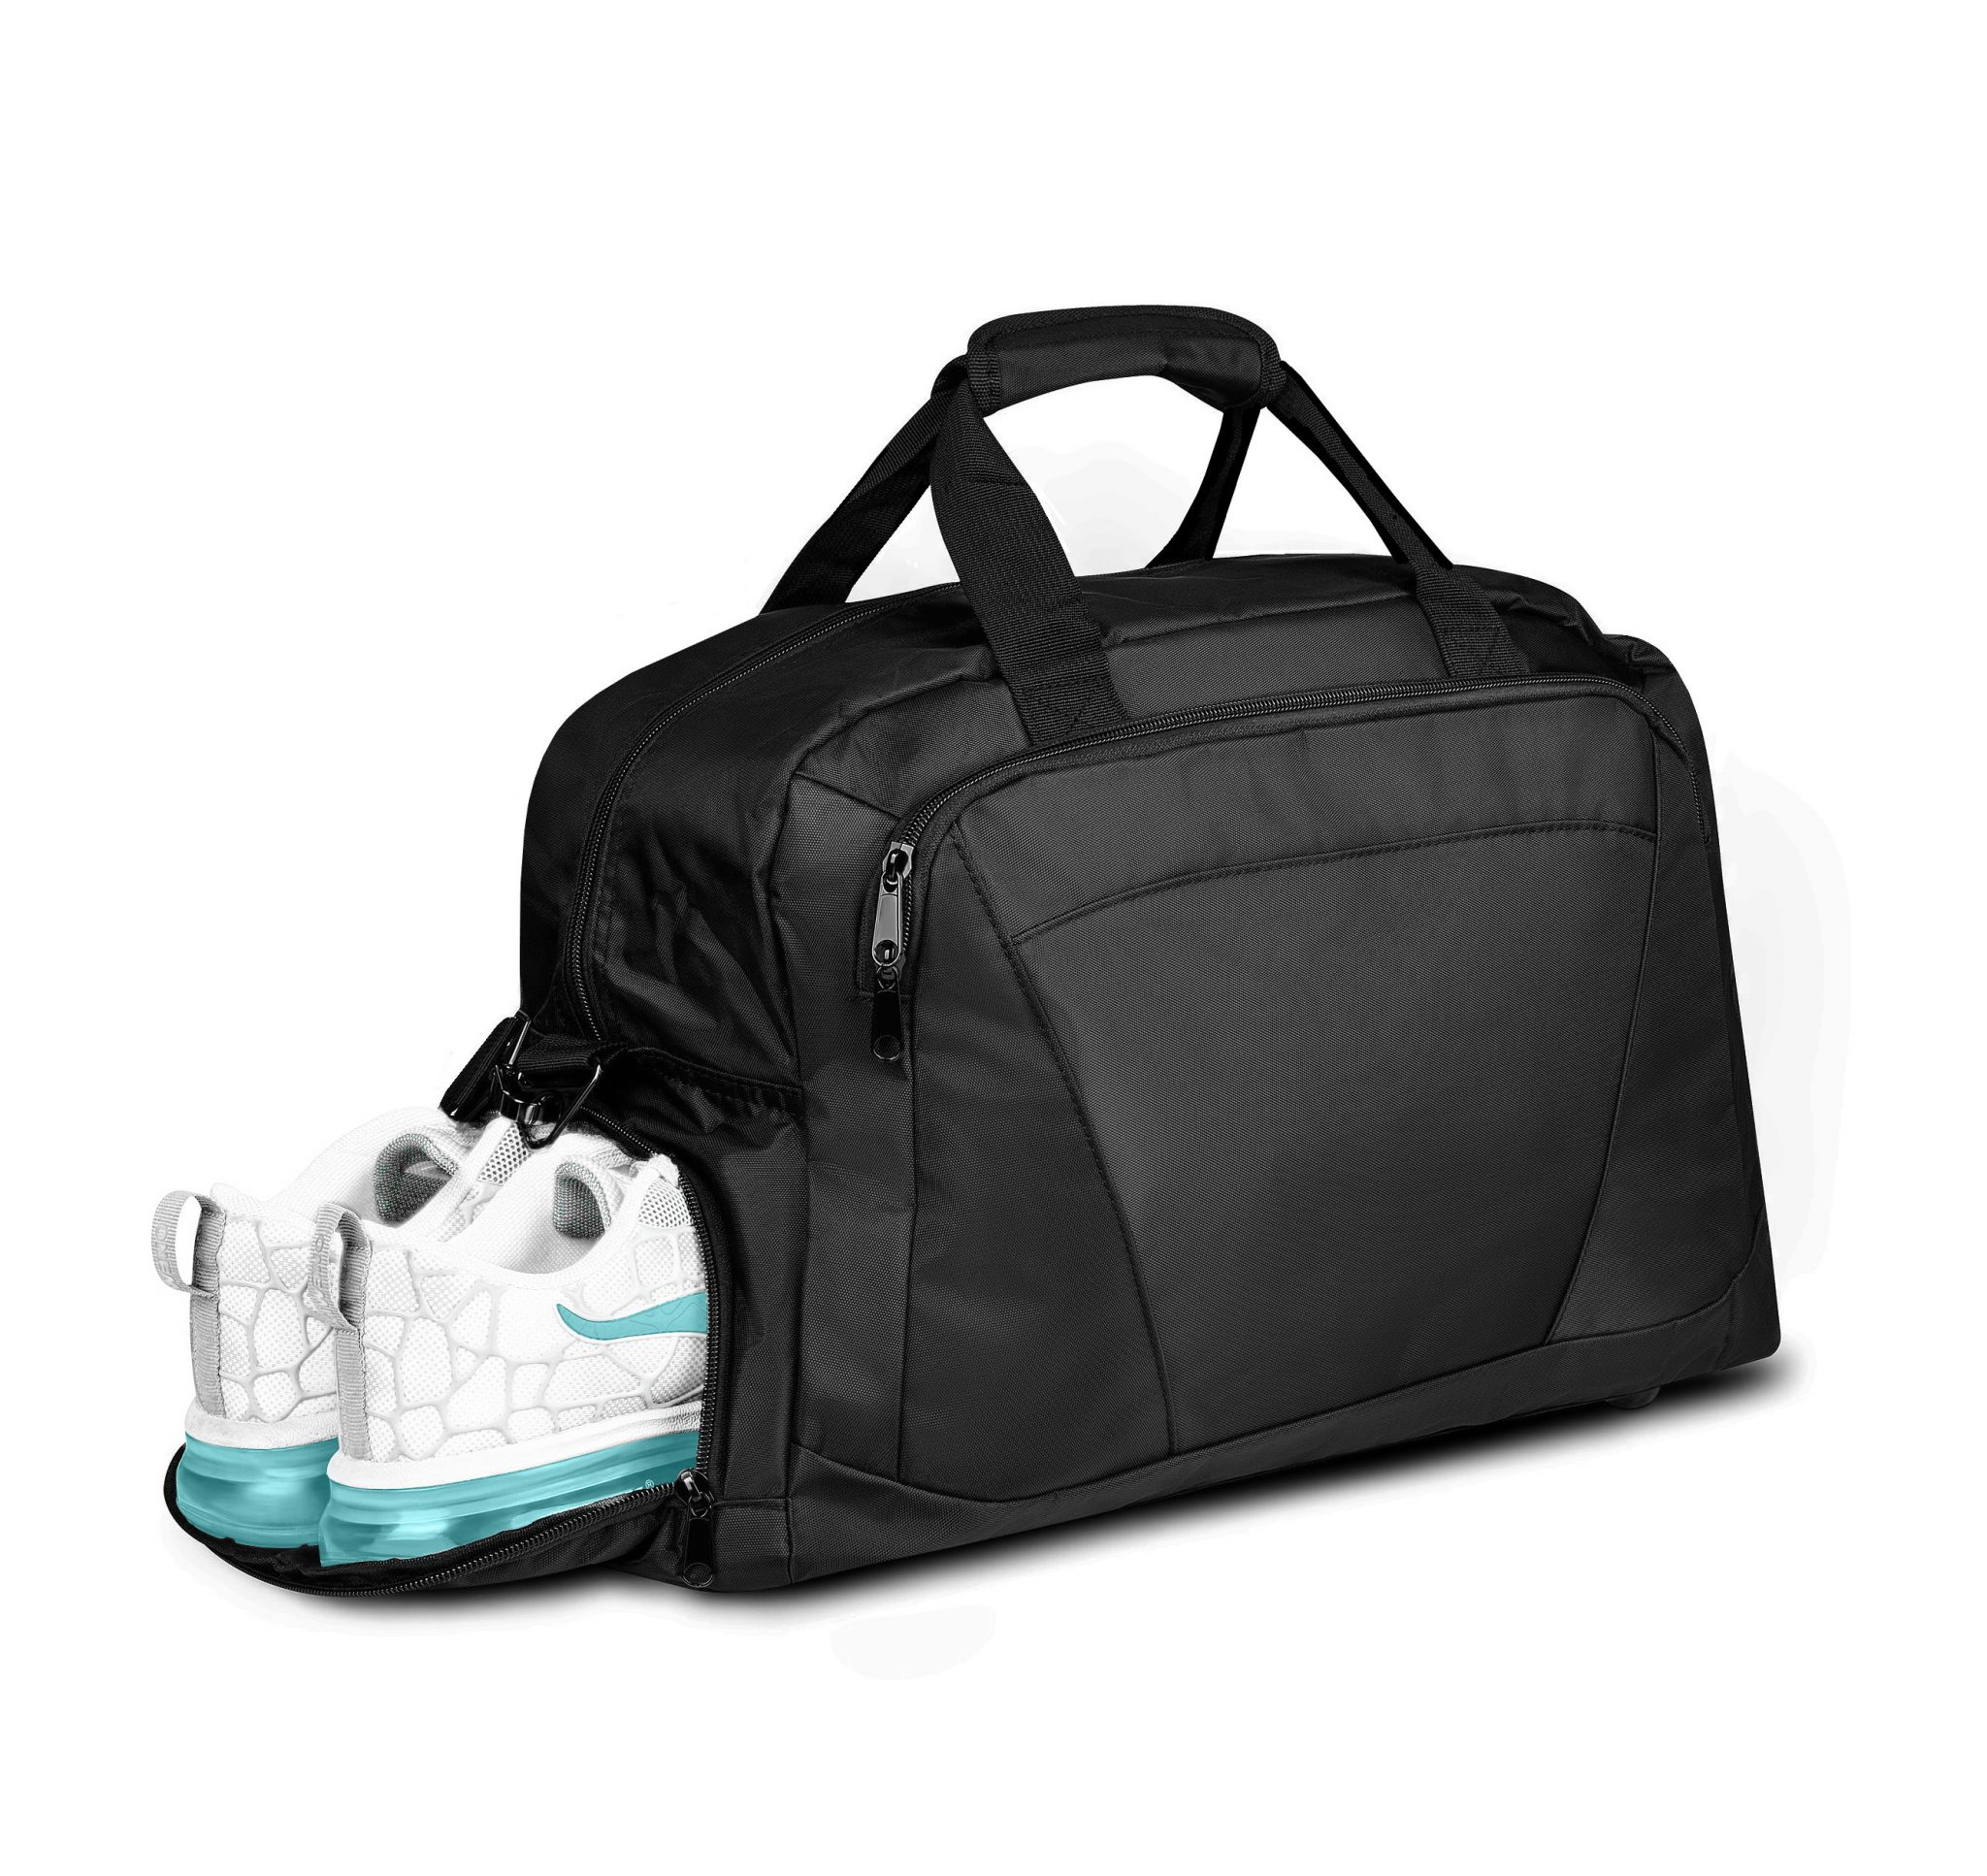 Hard Work Sports Gym Bag 2.0 Duffle Bag with Shoe Compartment